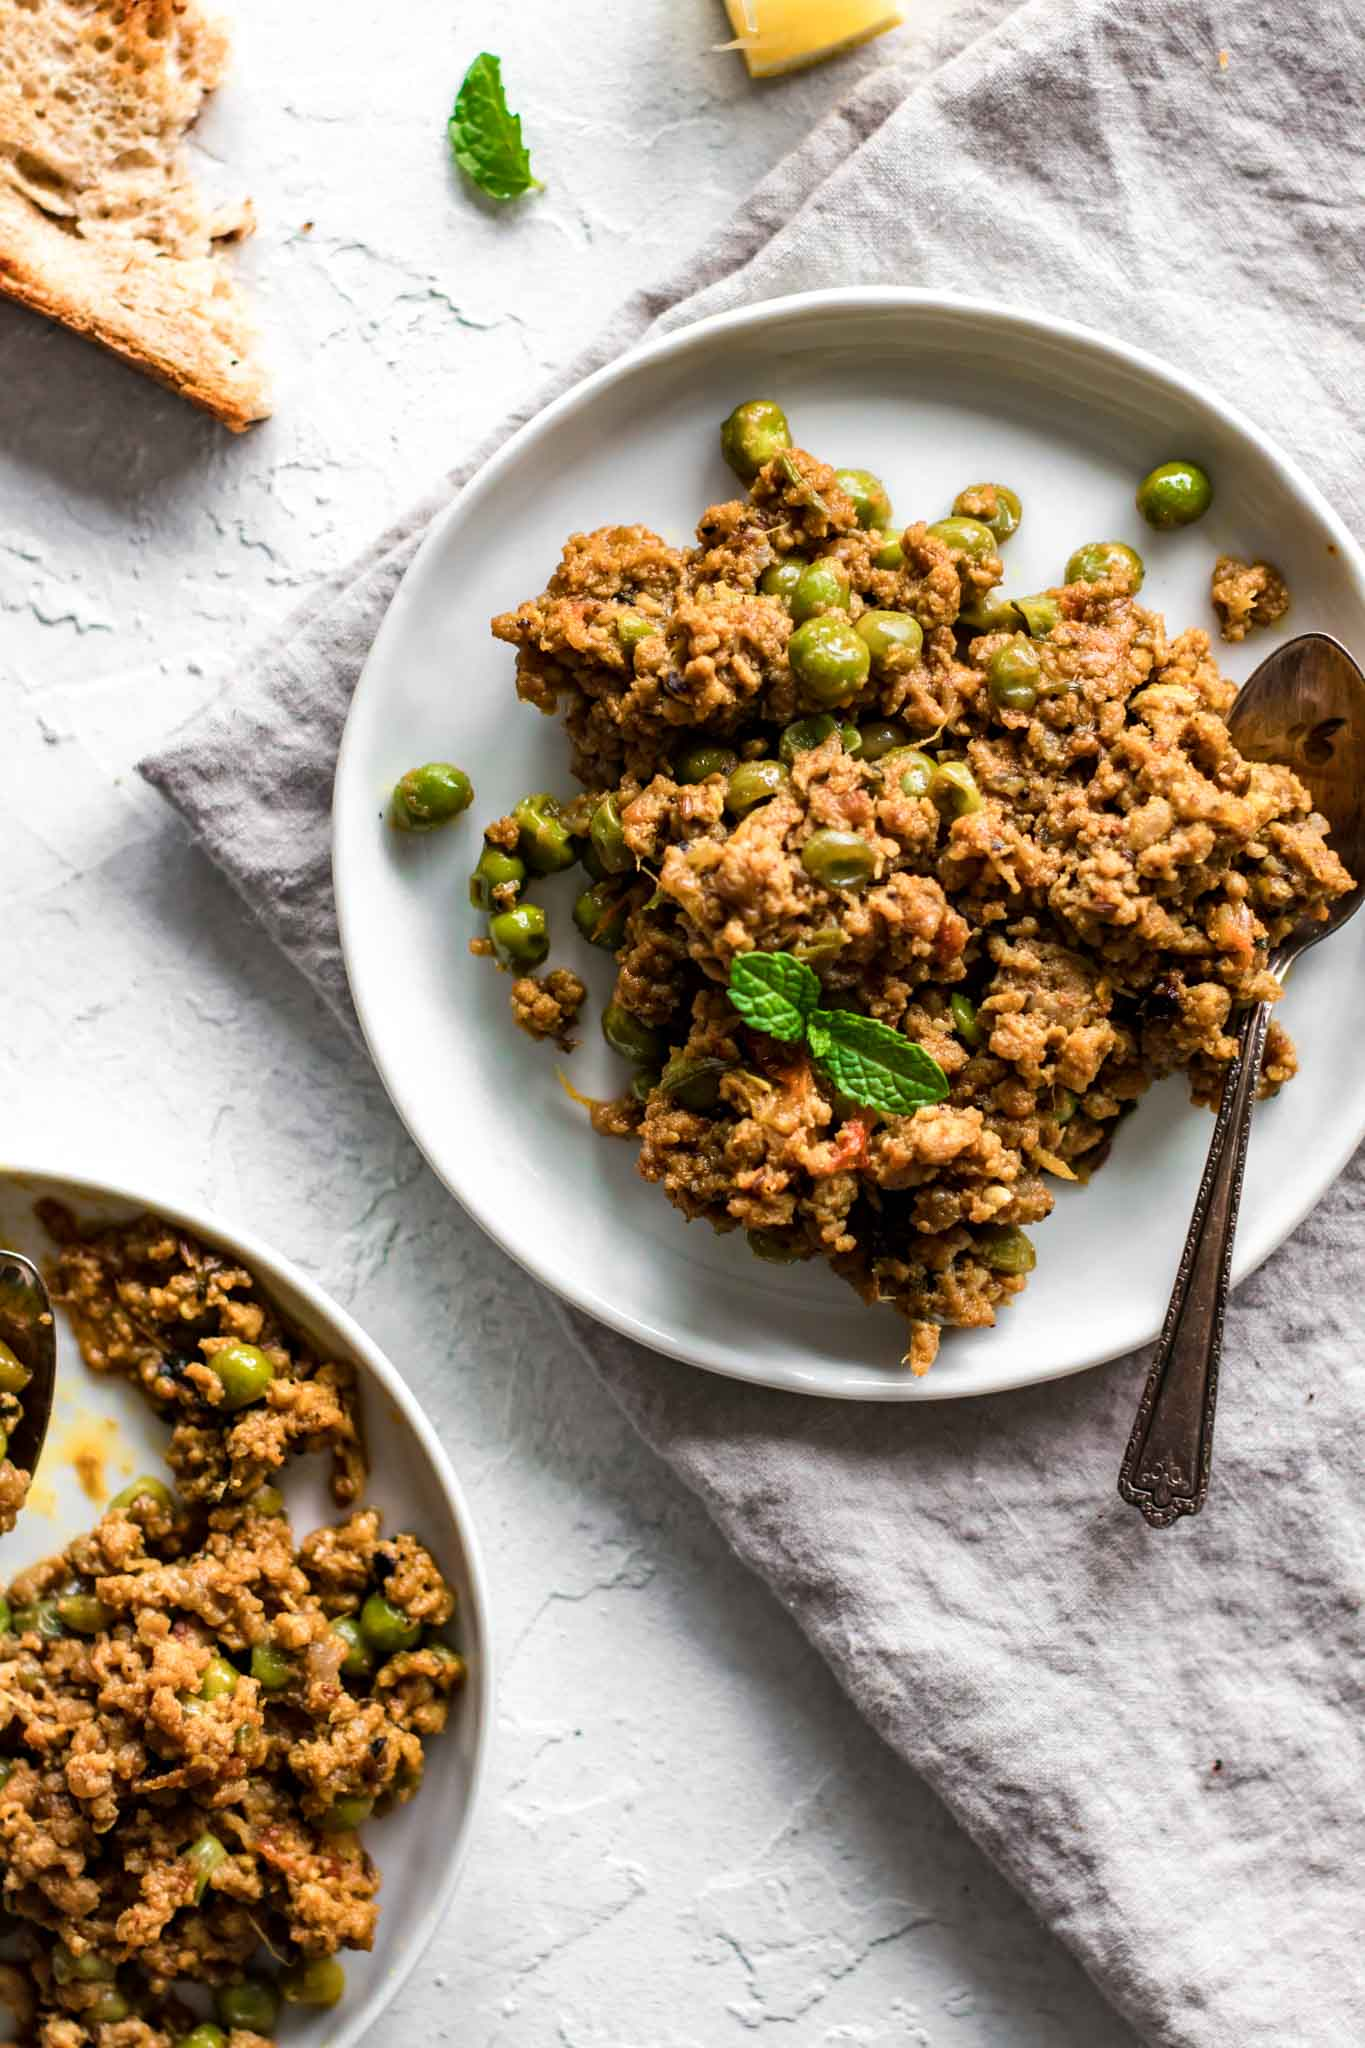 Keema Matar on a plate with a spoon